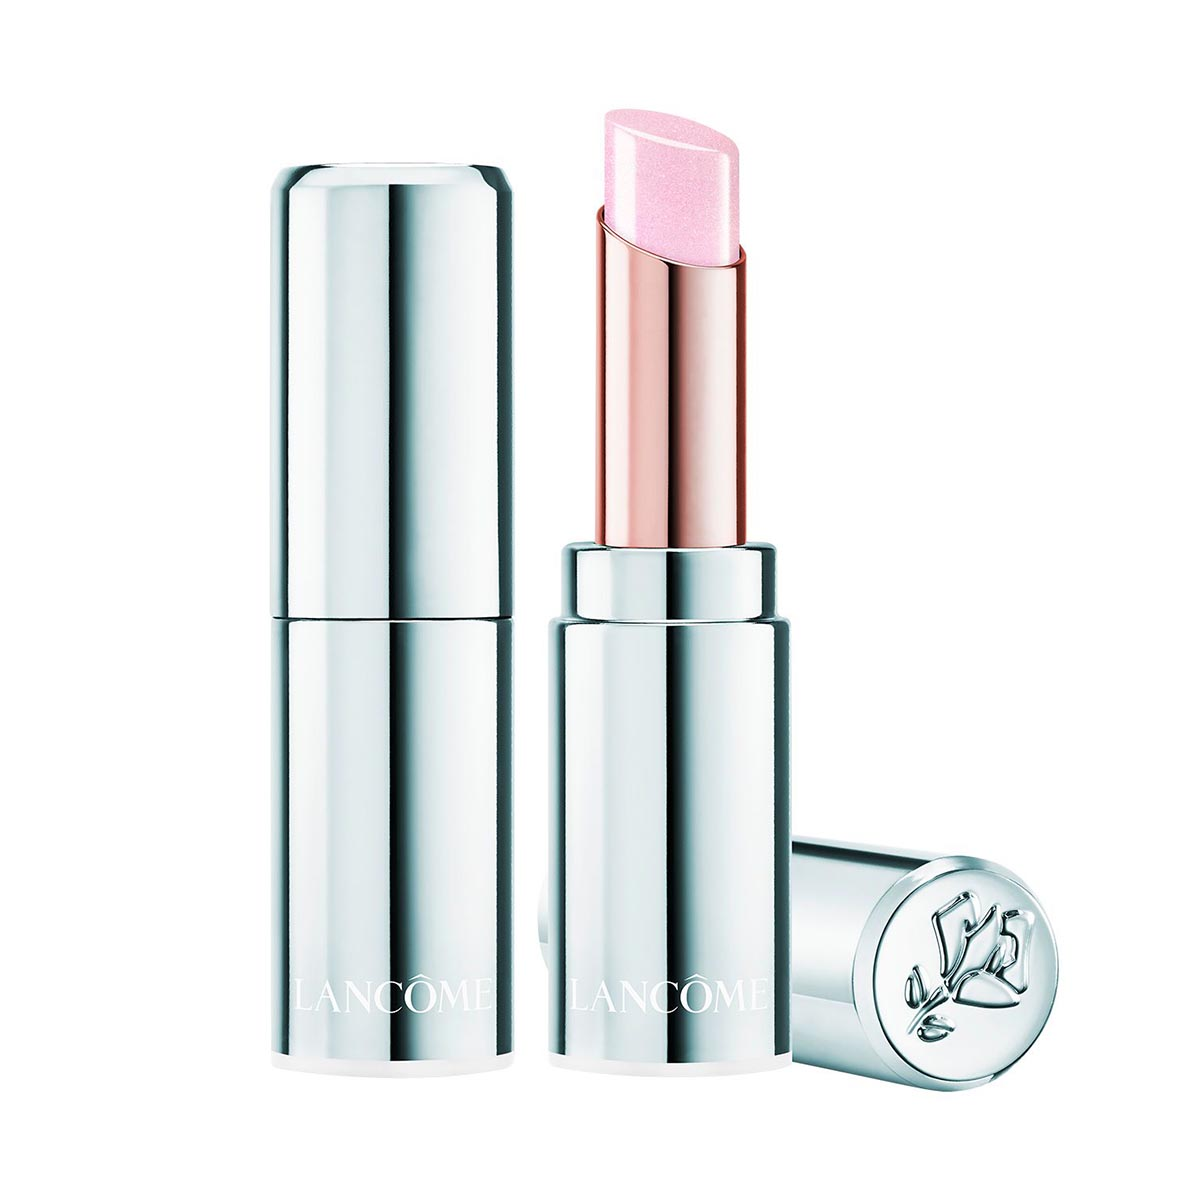 Lancome l absolu mademoiselle balm 002 ice cold pink